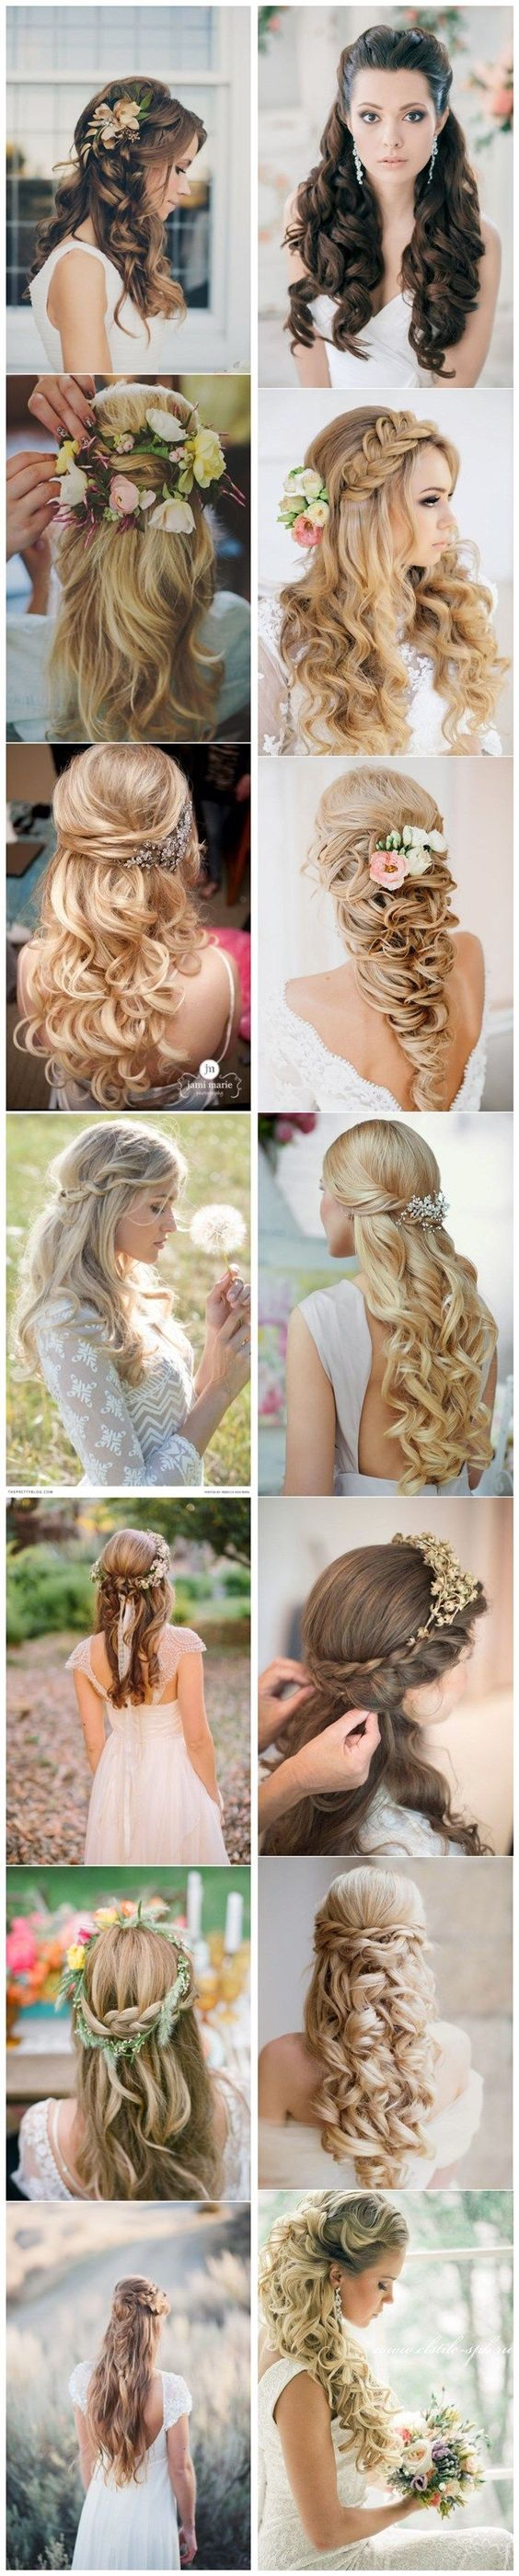 20 Stunning Half Up Half Down Wedding Hairstyles with Tutorial